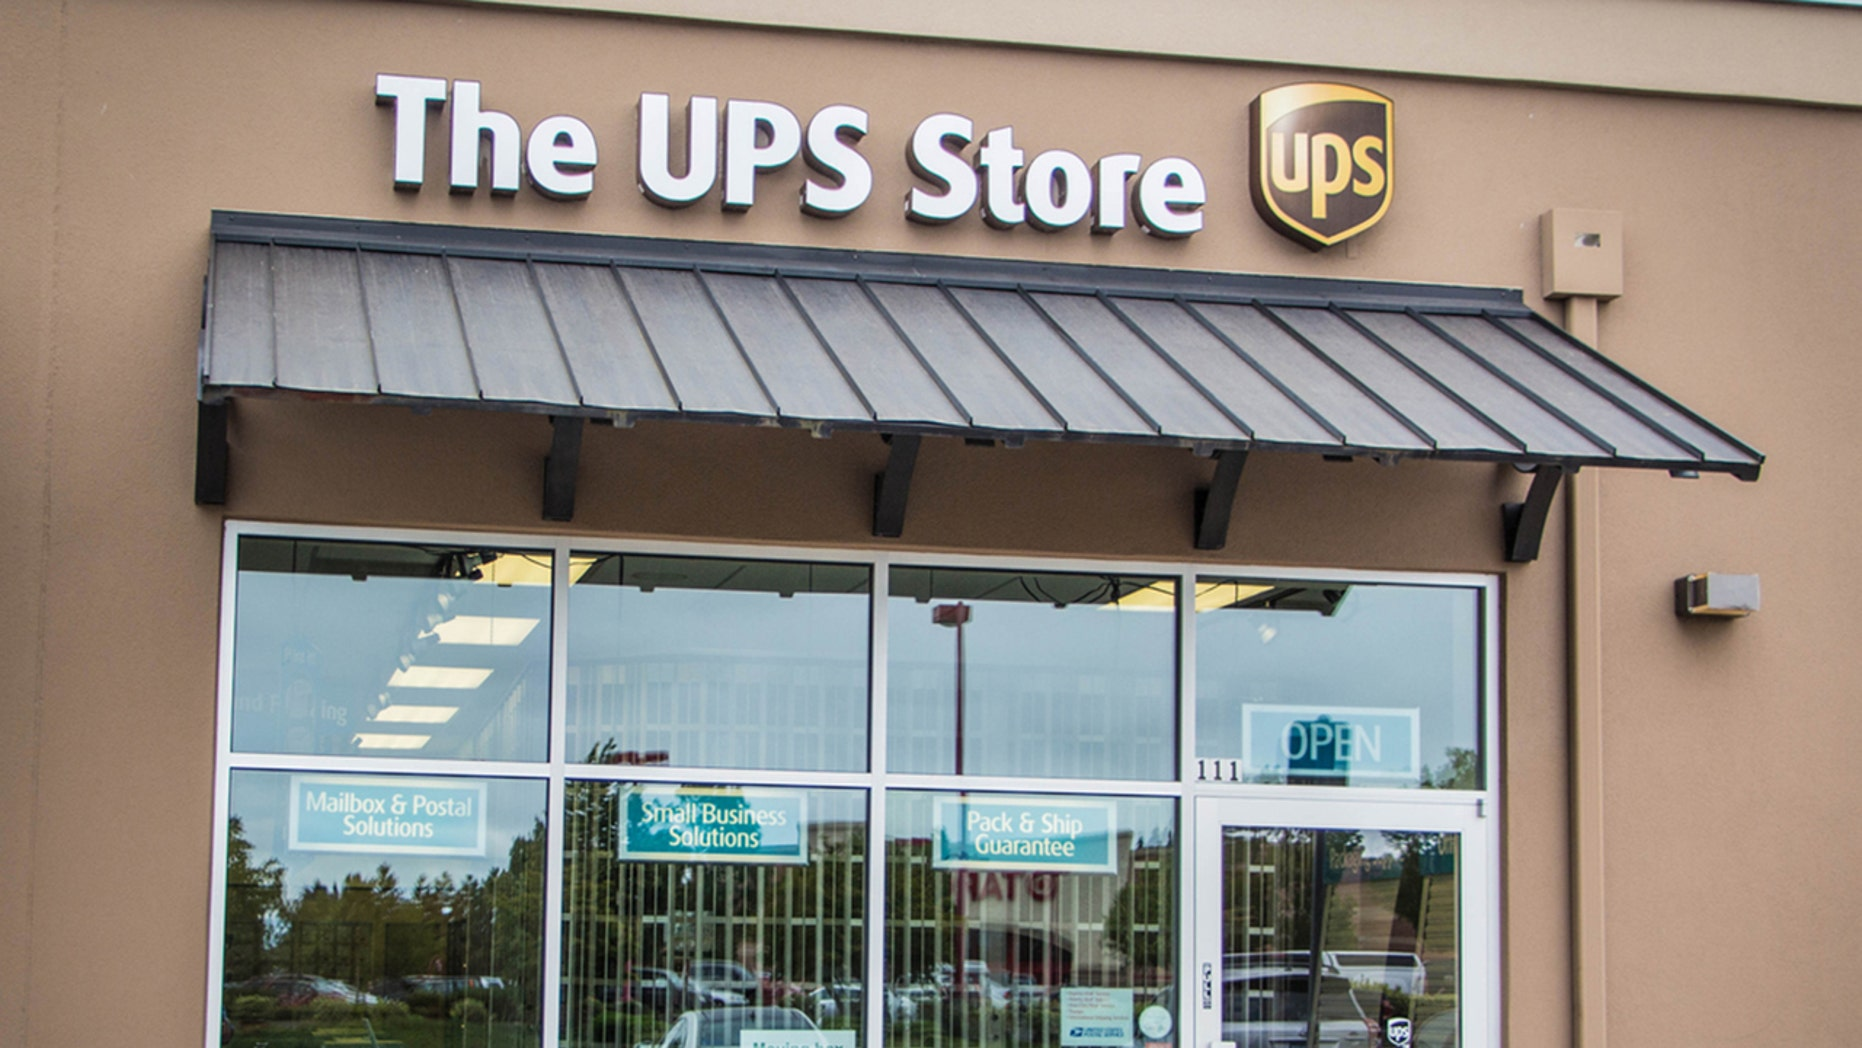 UPS Store deletes Christmas 'shredding' tweet after massive backlash